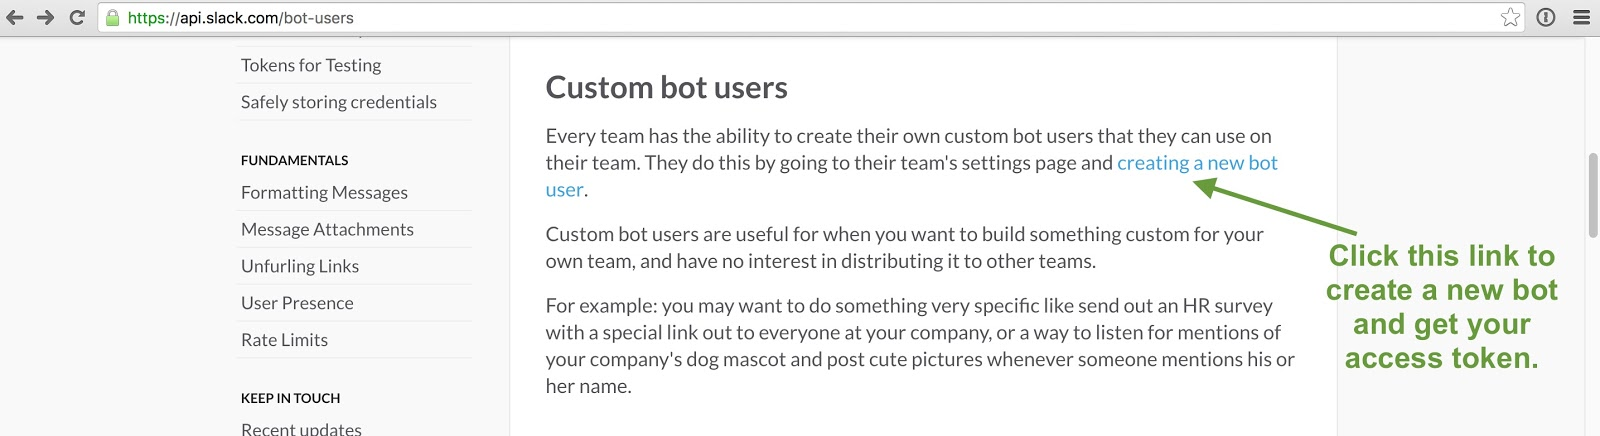 custom-bot-users.jpg